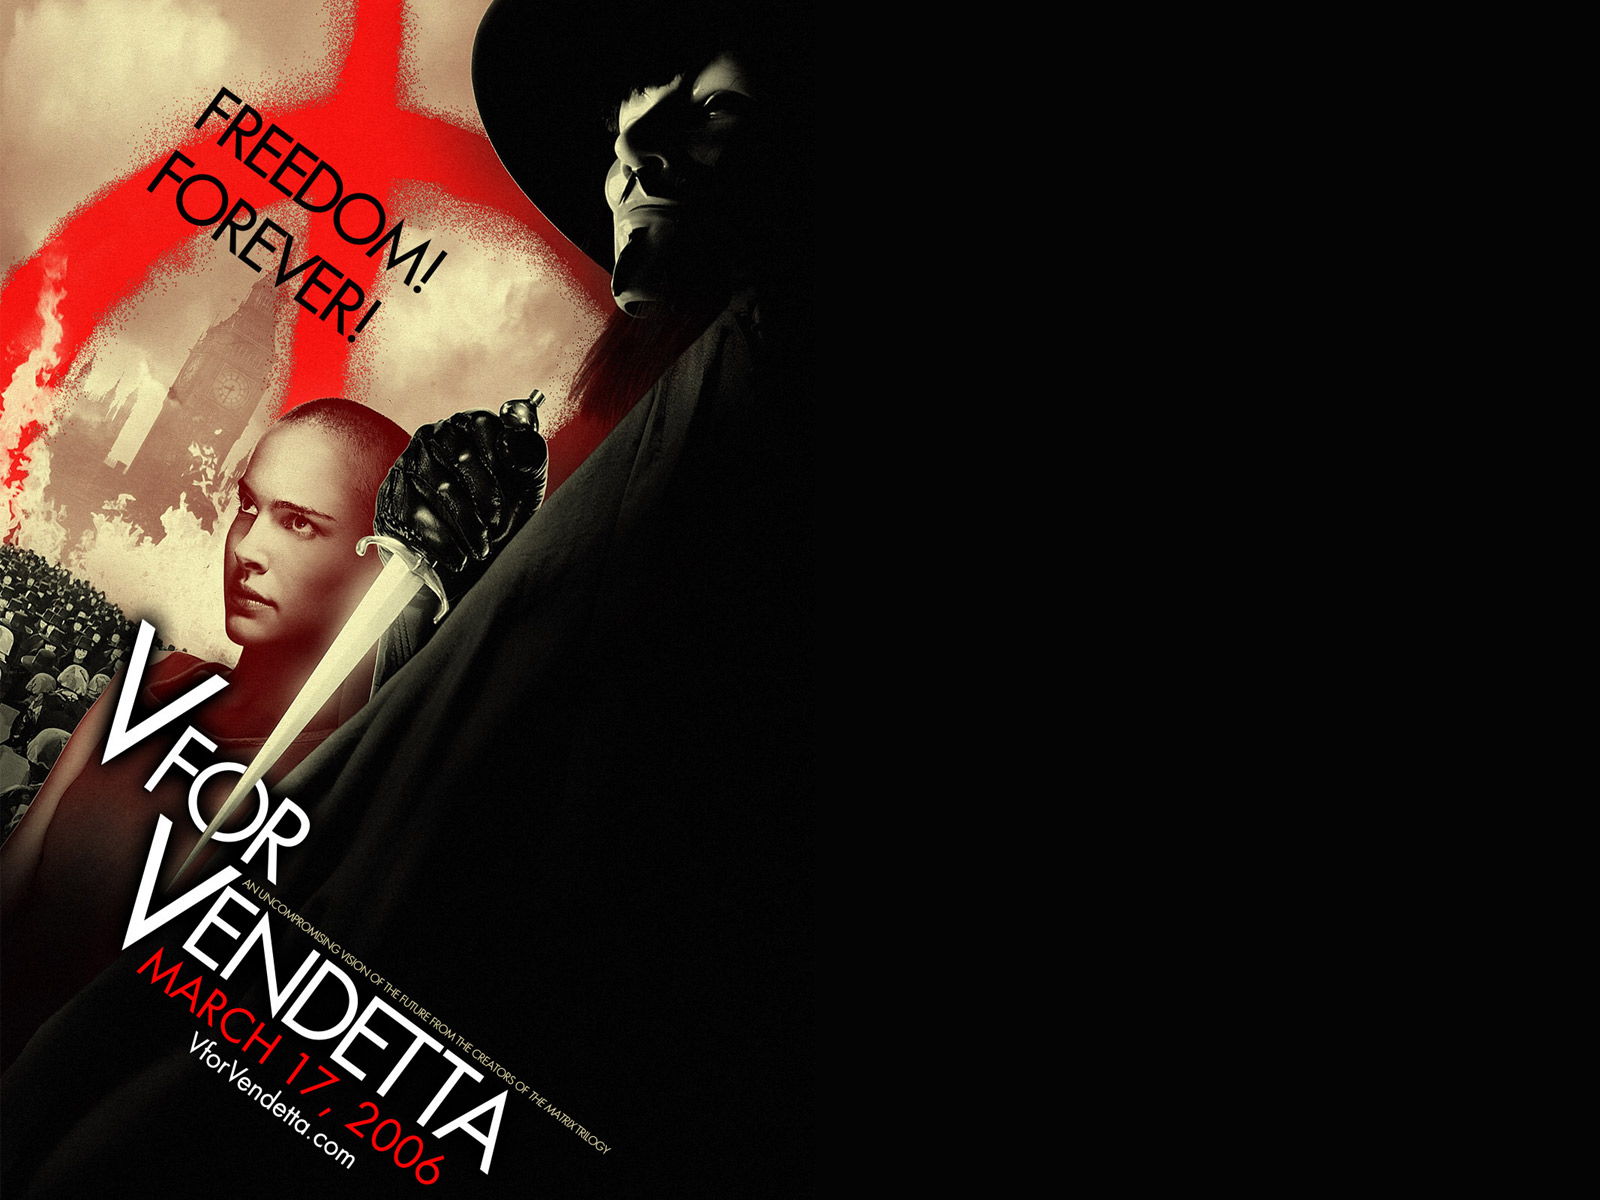 Wallpaper Evey Hammond & V V pour Vendetta - V for Vendetta